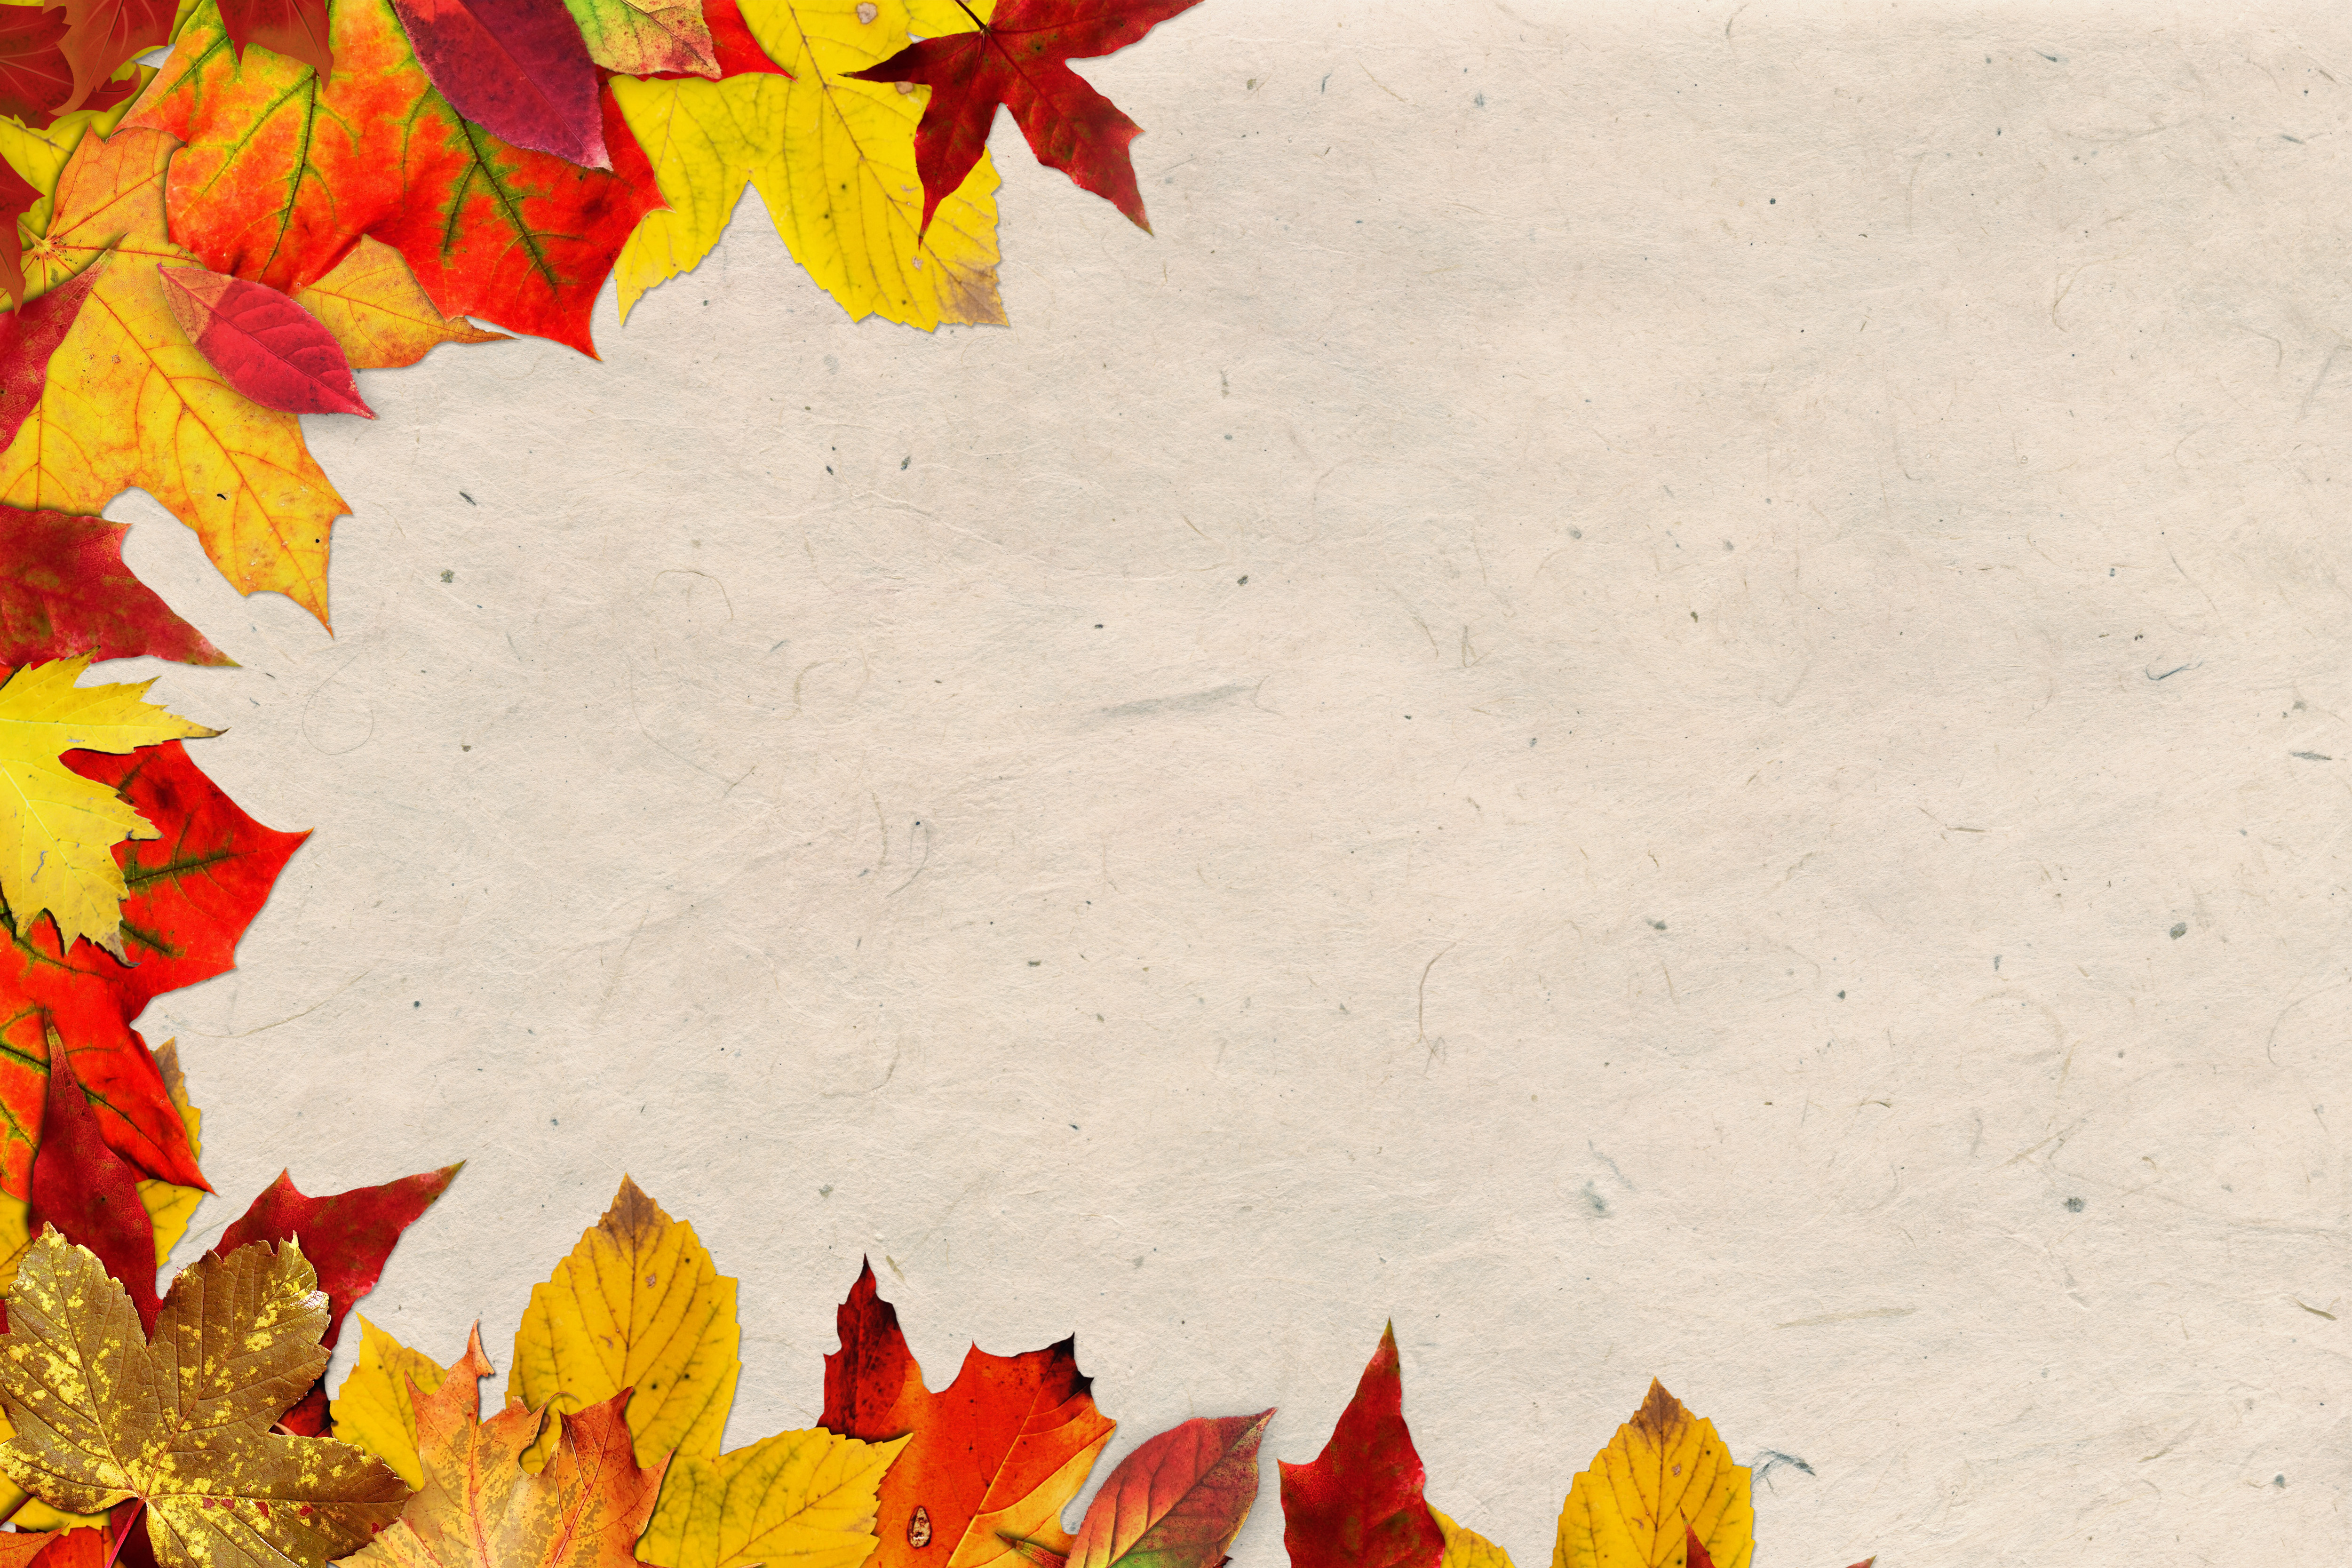 Fall Pictures Wallpaper Desktop Free Stock Photo Of Autum Background Burlap